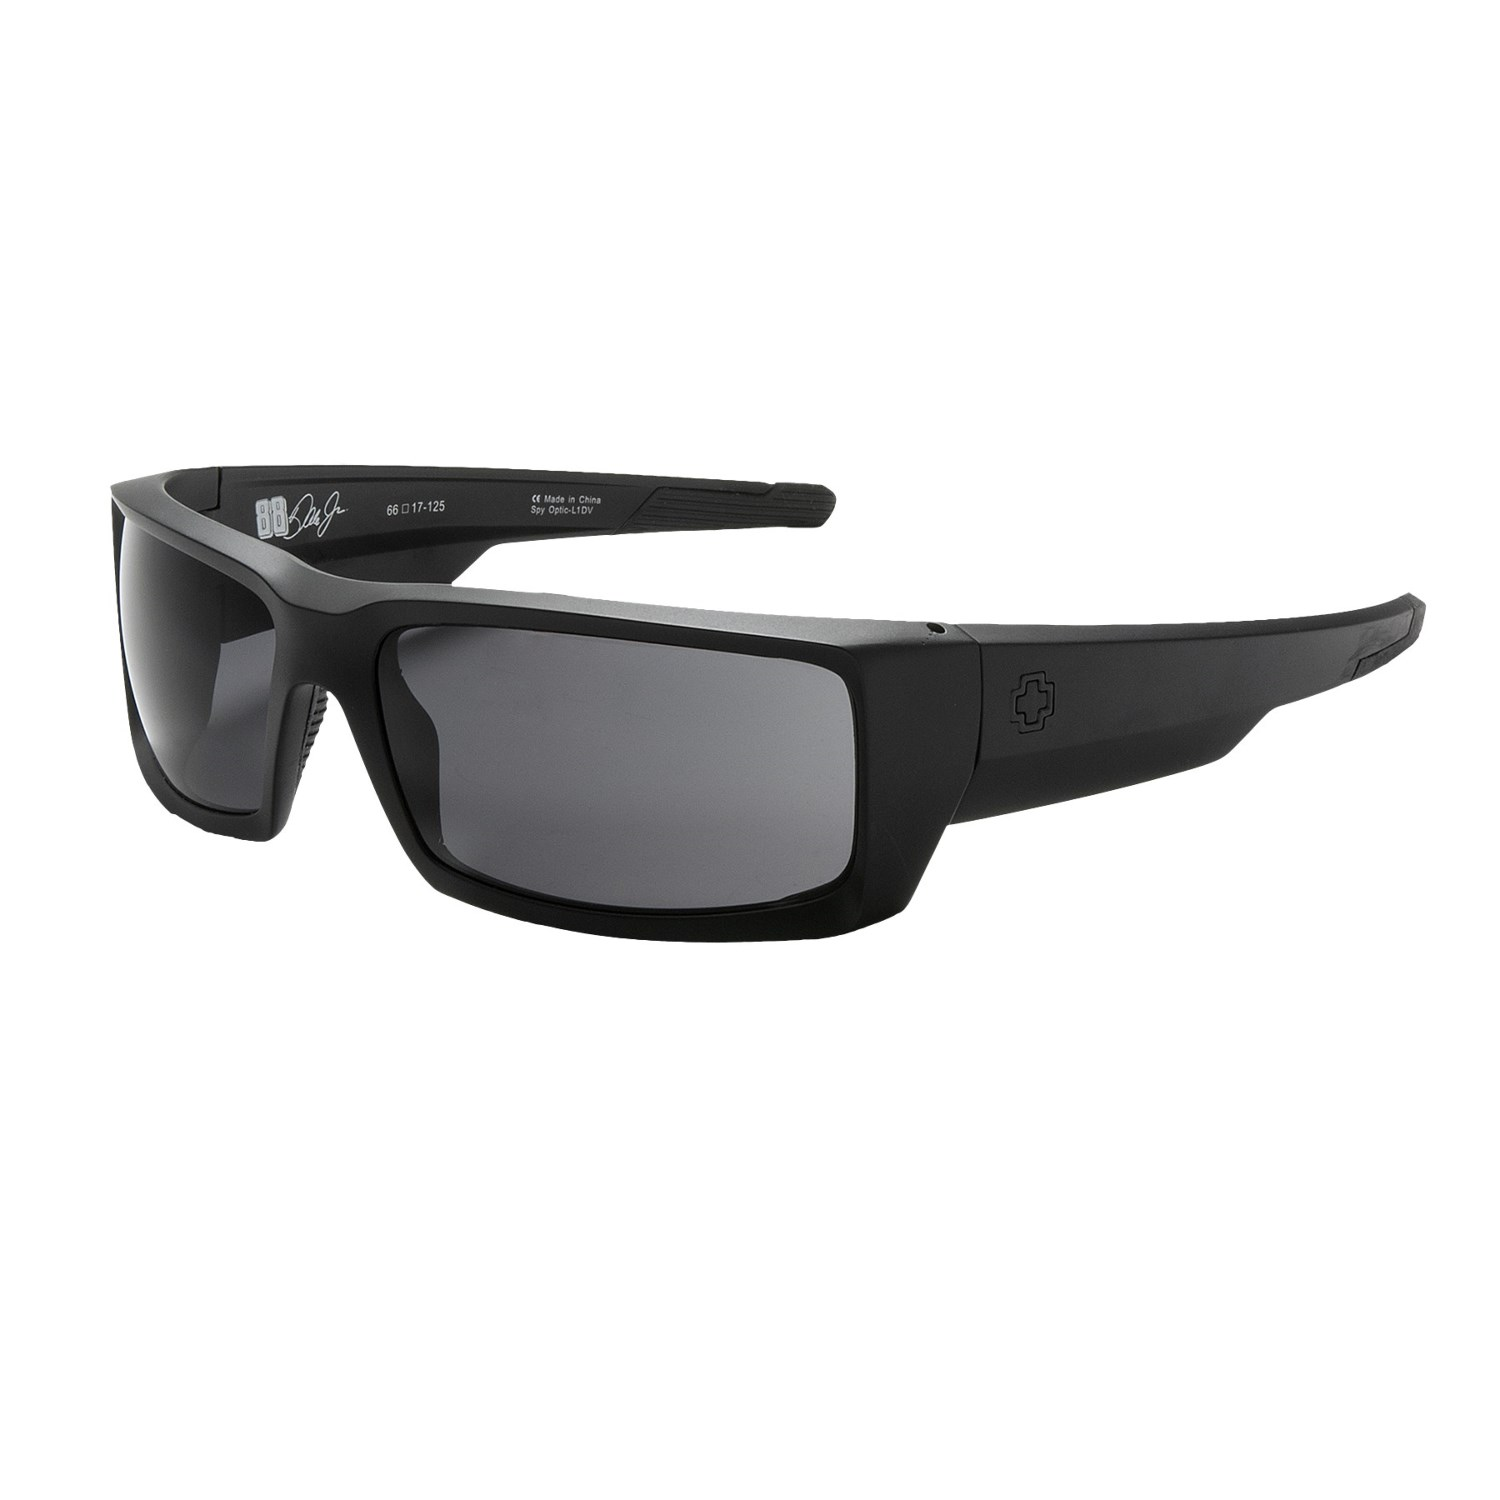 9725320862 Spy Optics Polarized Sunglasses